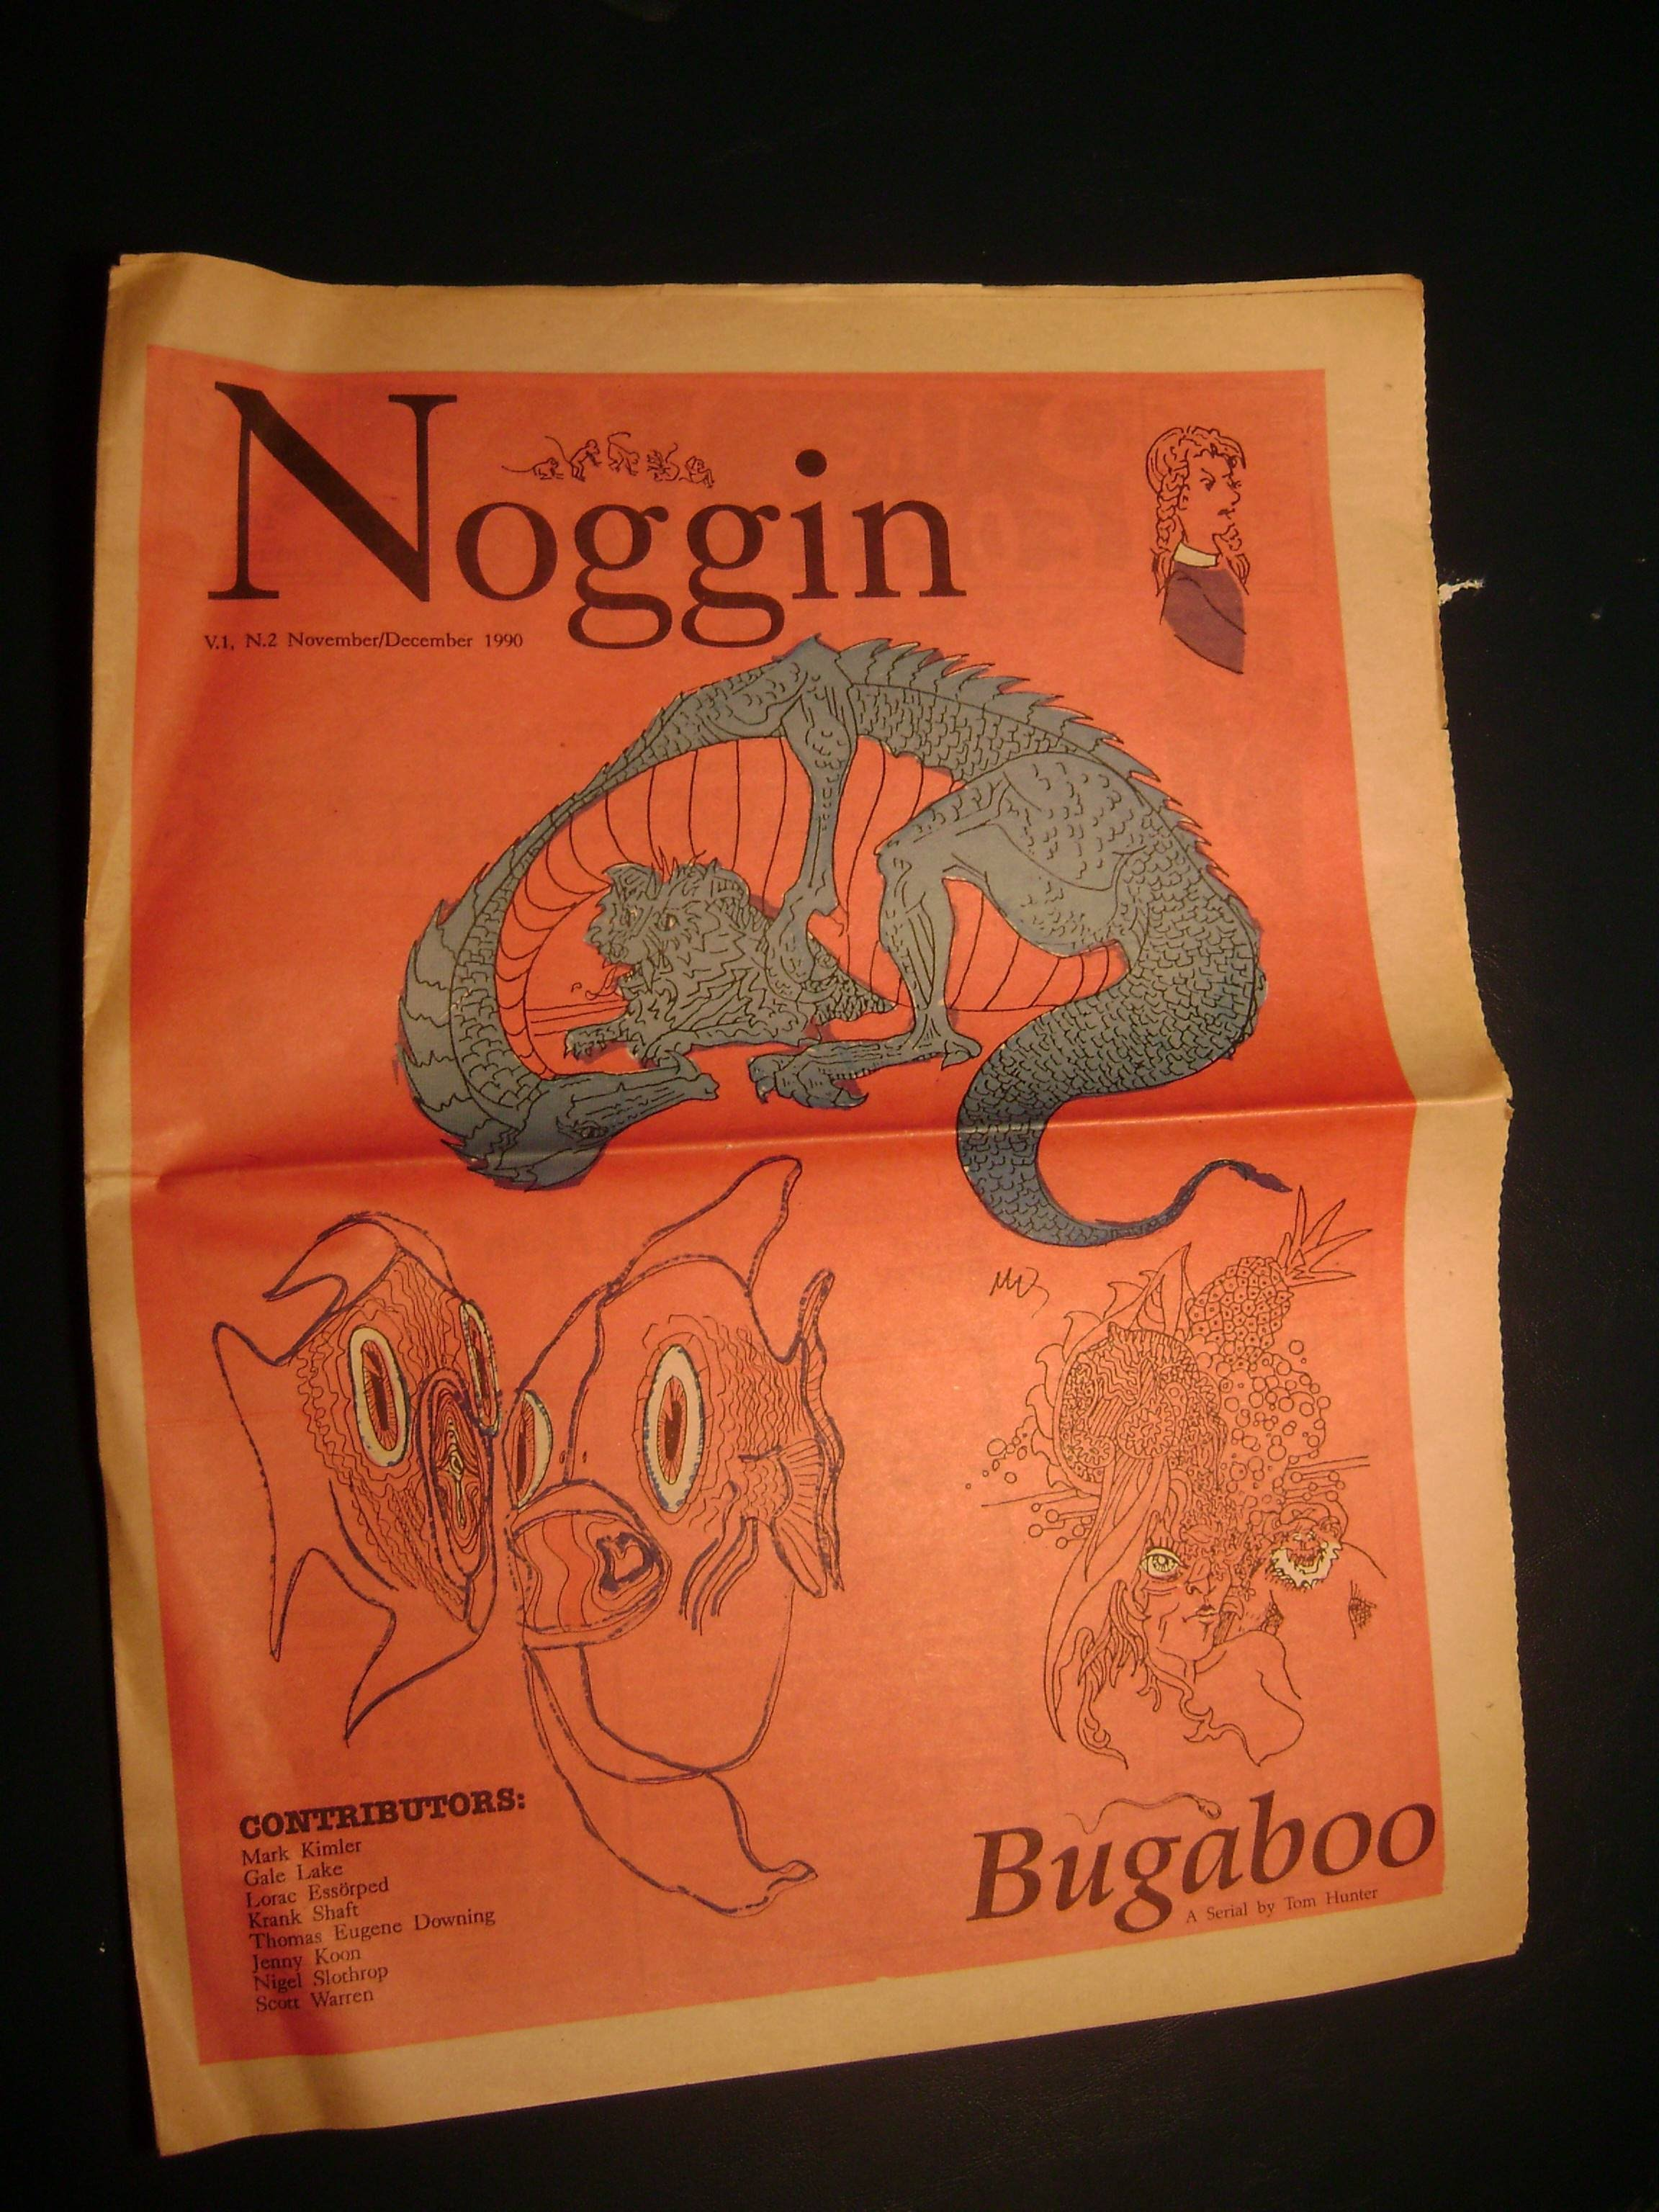 Noggin Magazine: V1N2, Nov/Dec 1990, Page 1